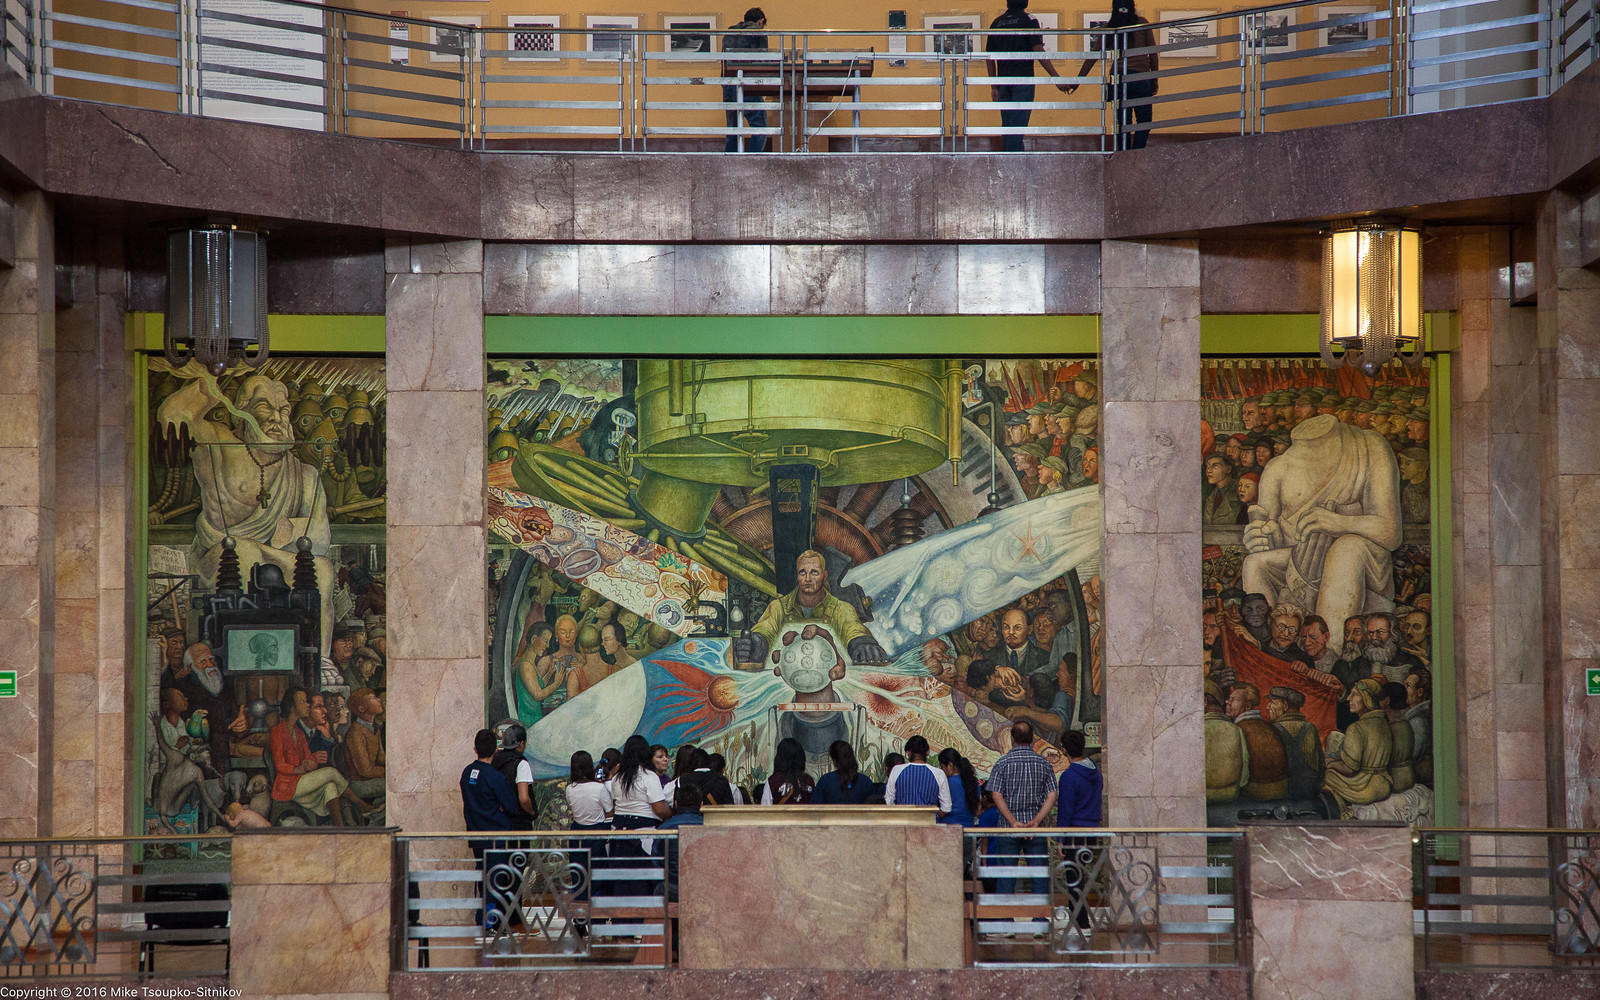 Diego rivera in mexico city demerjee travels more for Diego rivera mural at rockefeller center